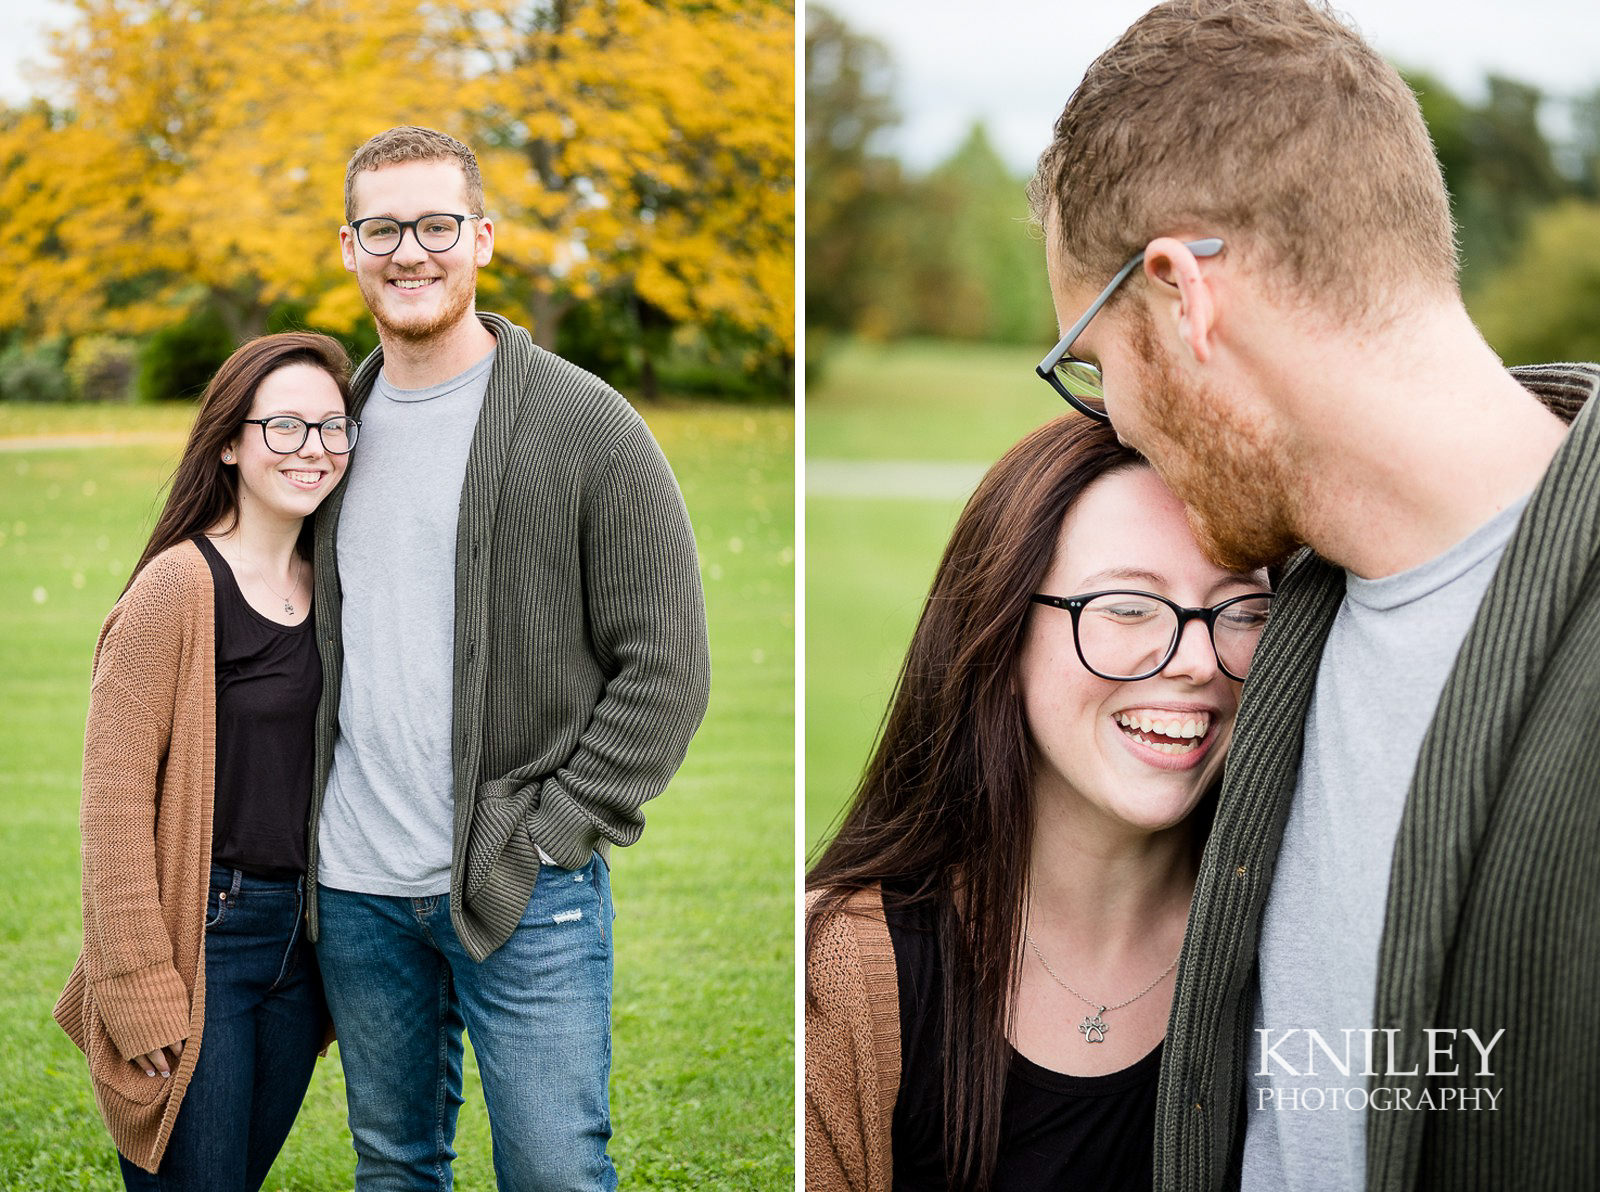 Highland Park Fall Engagement Session - Rochester NY - collage 1.jpg